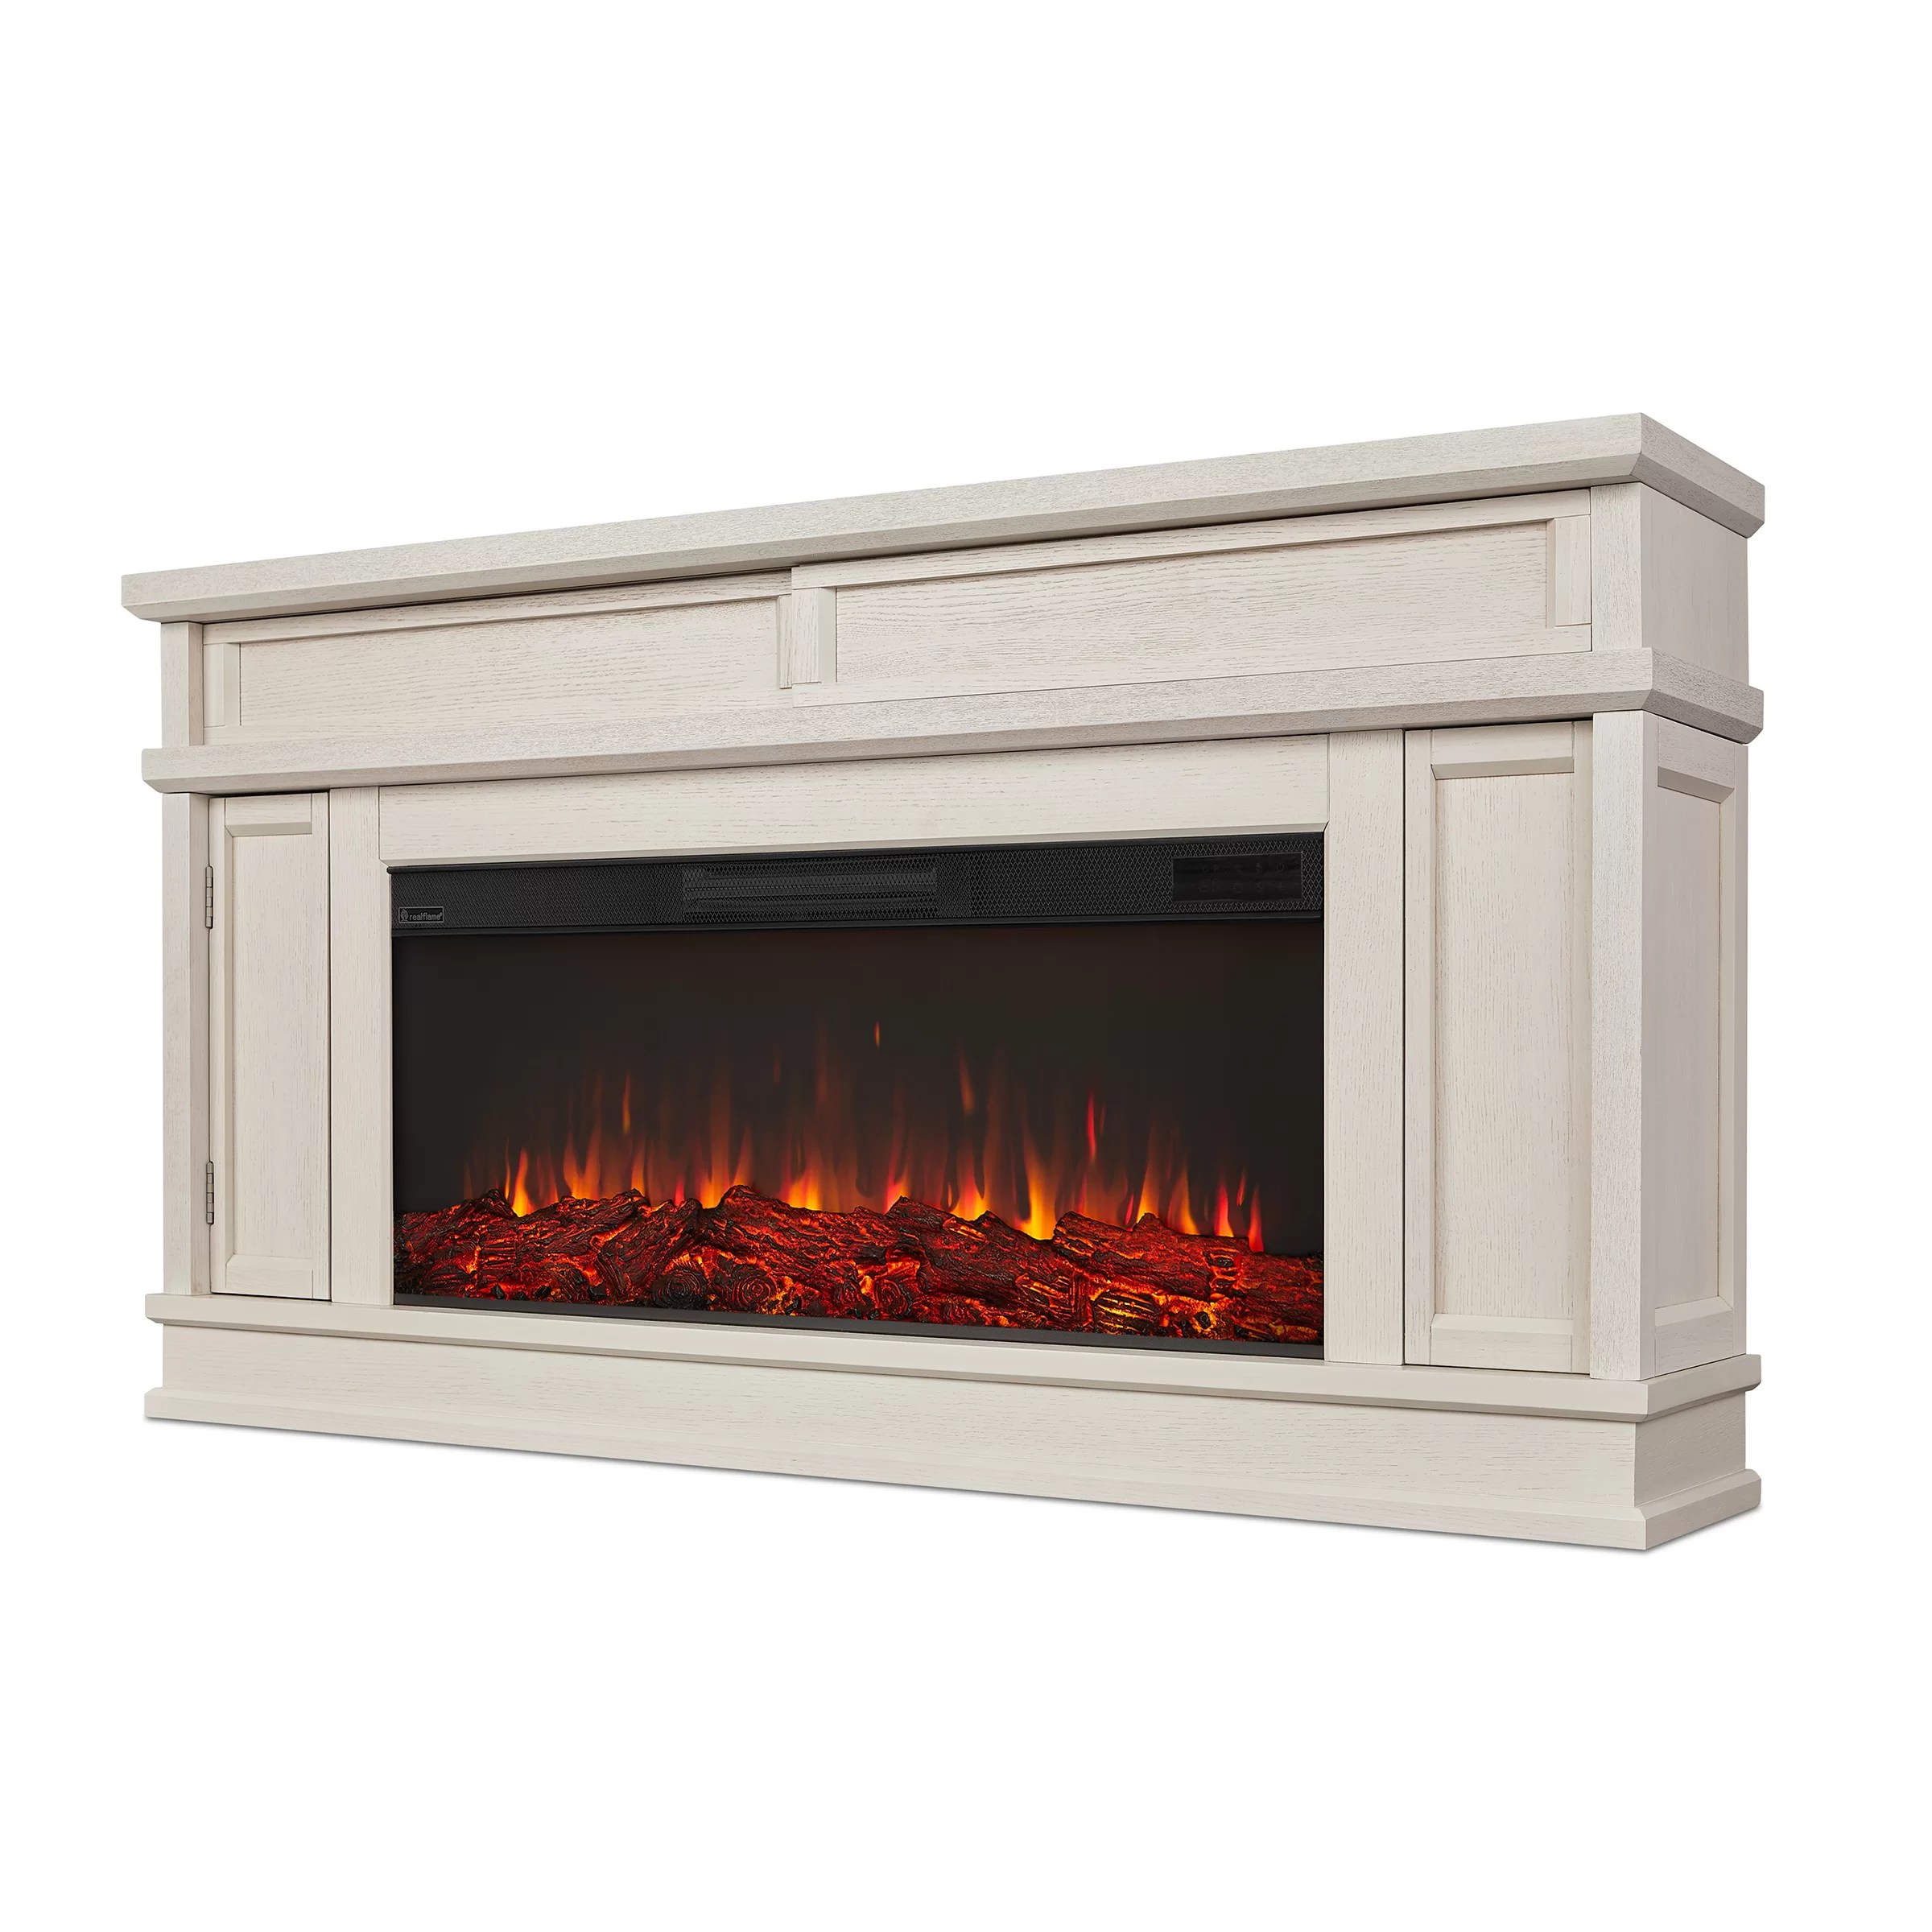 Electric Fireplace.com Real Flame Torrey Electric Fireplace Reviews Wayfair